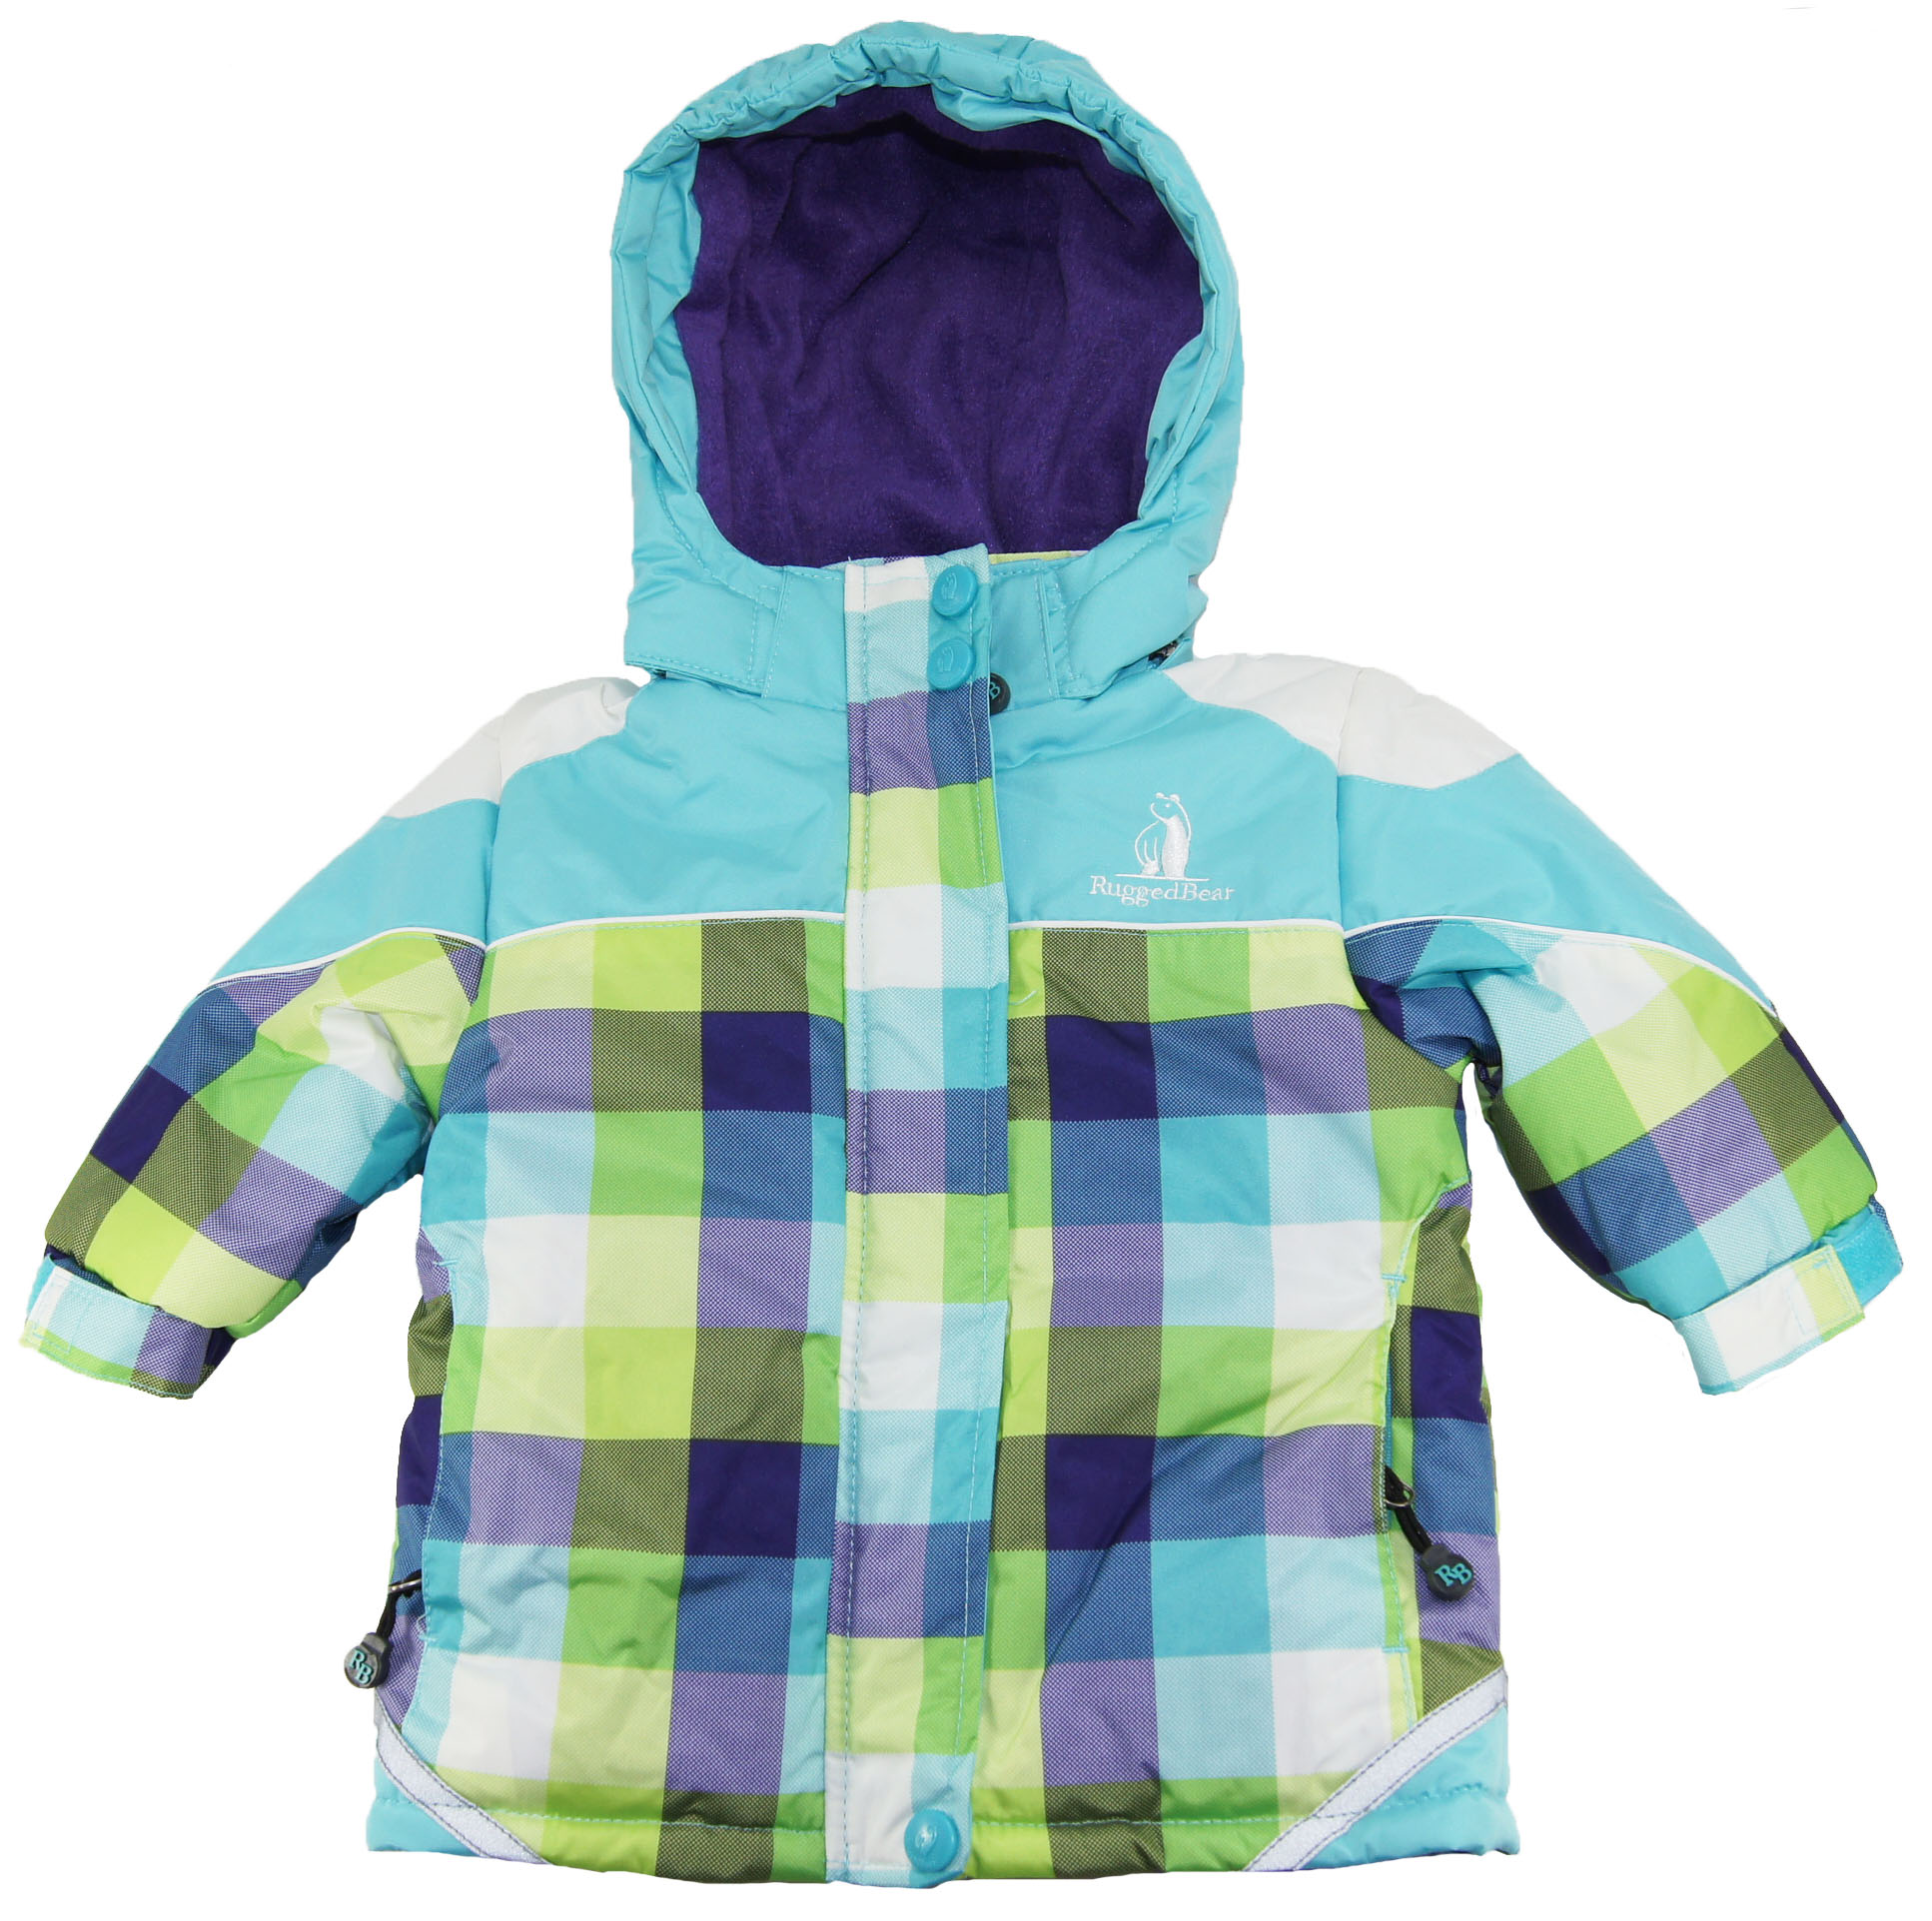 Rugged Bear Toddler Girls Blue Checked Hooded Snow Ski Jacket/Coat 2T 3T 4T at Sears.com